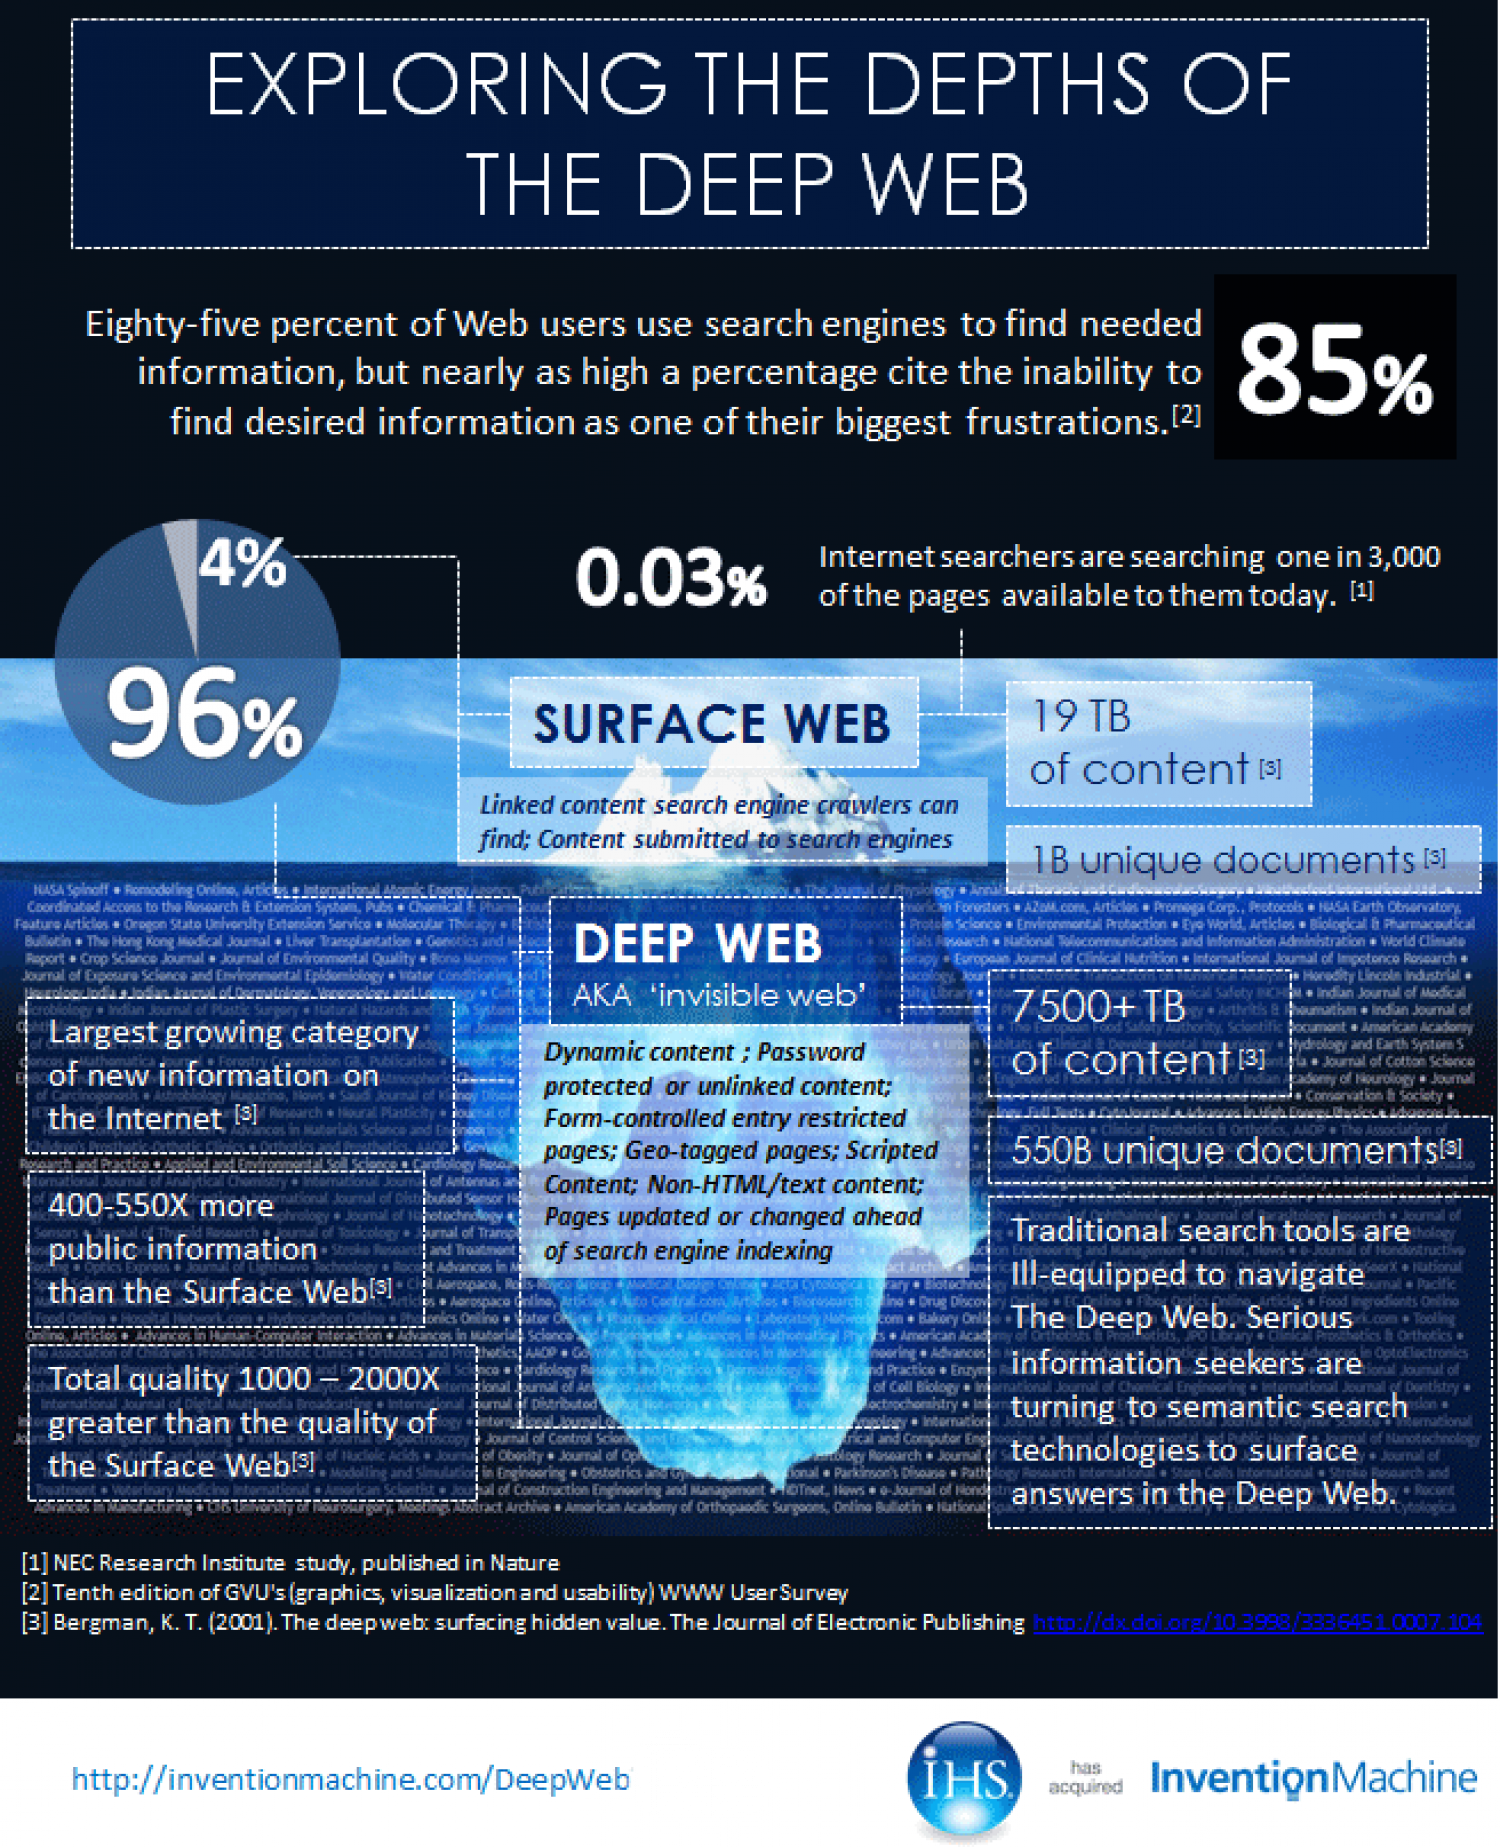 Exploring the Deep Web with Semantic Search Infographic